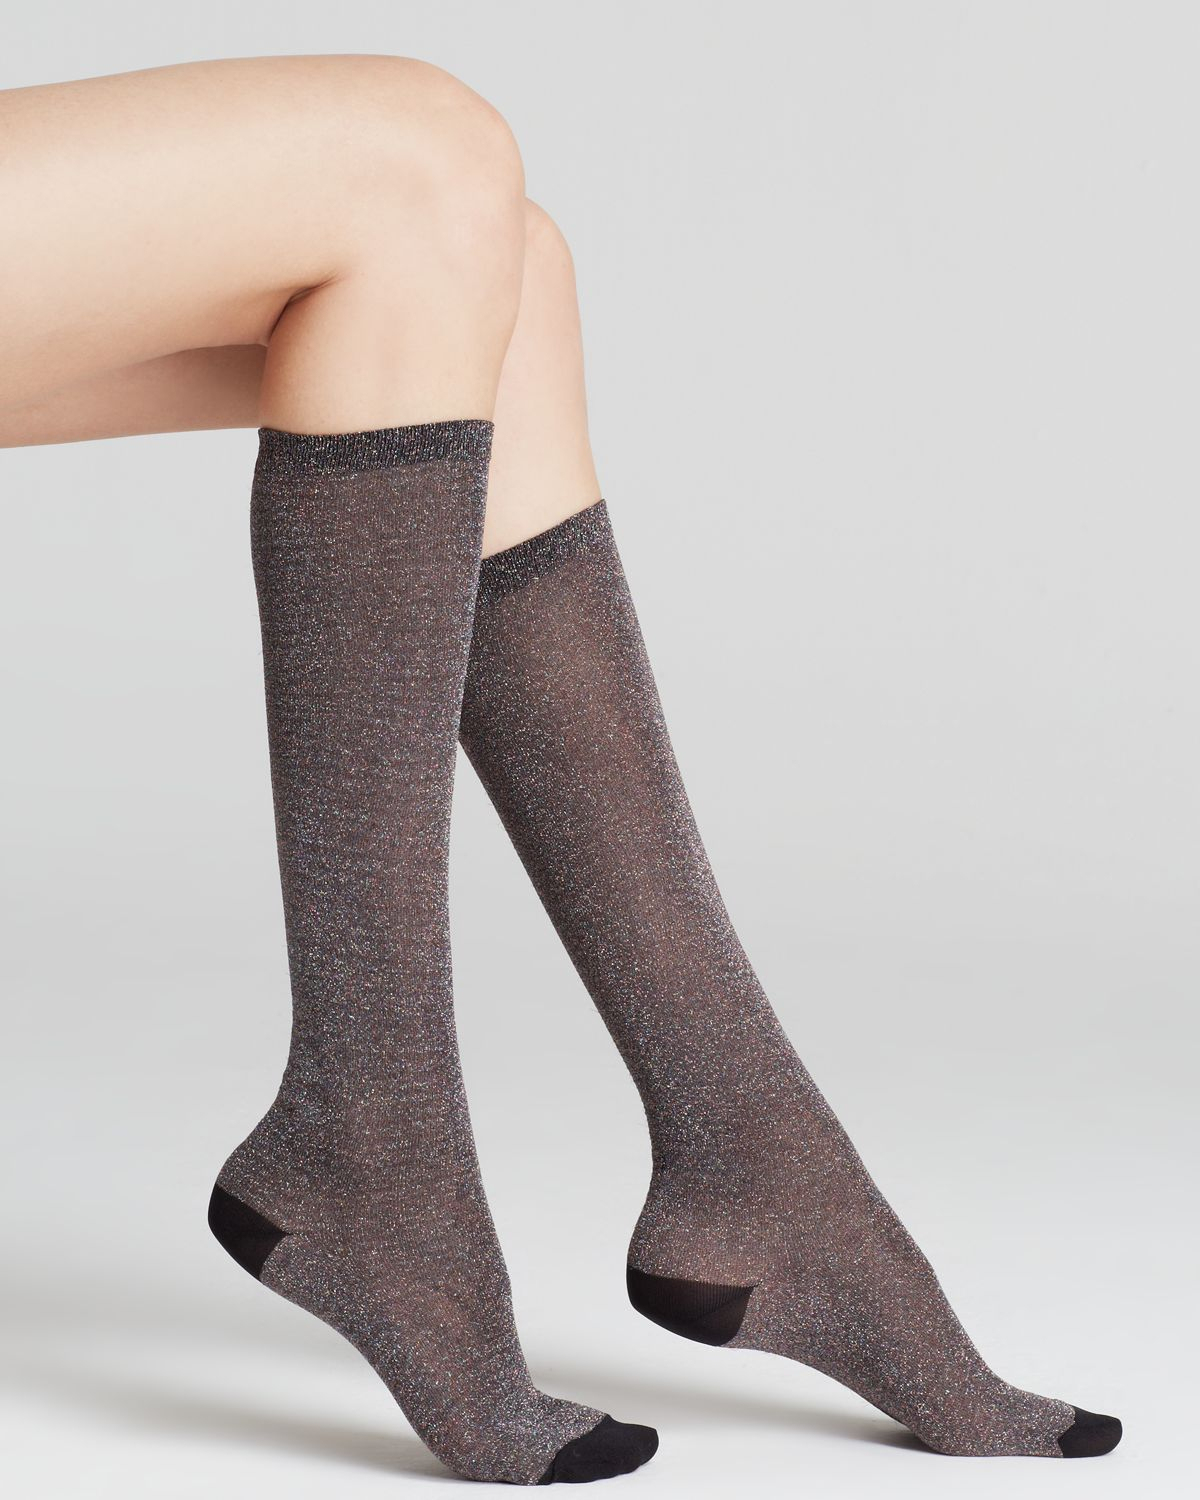 975199d97cc Gallery. Previously sold at  Bloomingdale s · Women s Knee High Socks